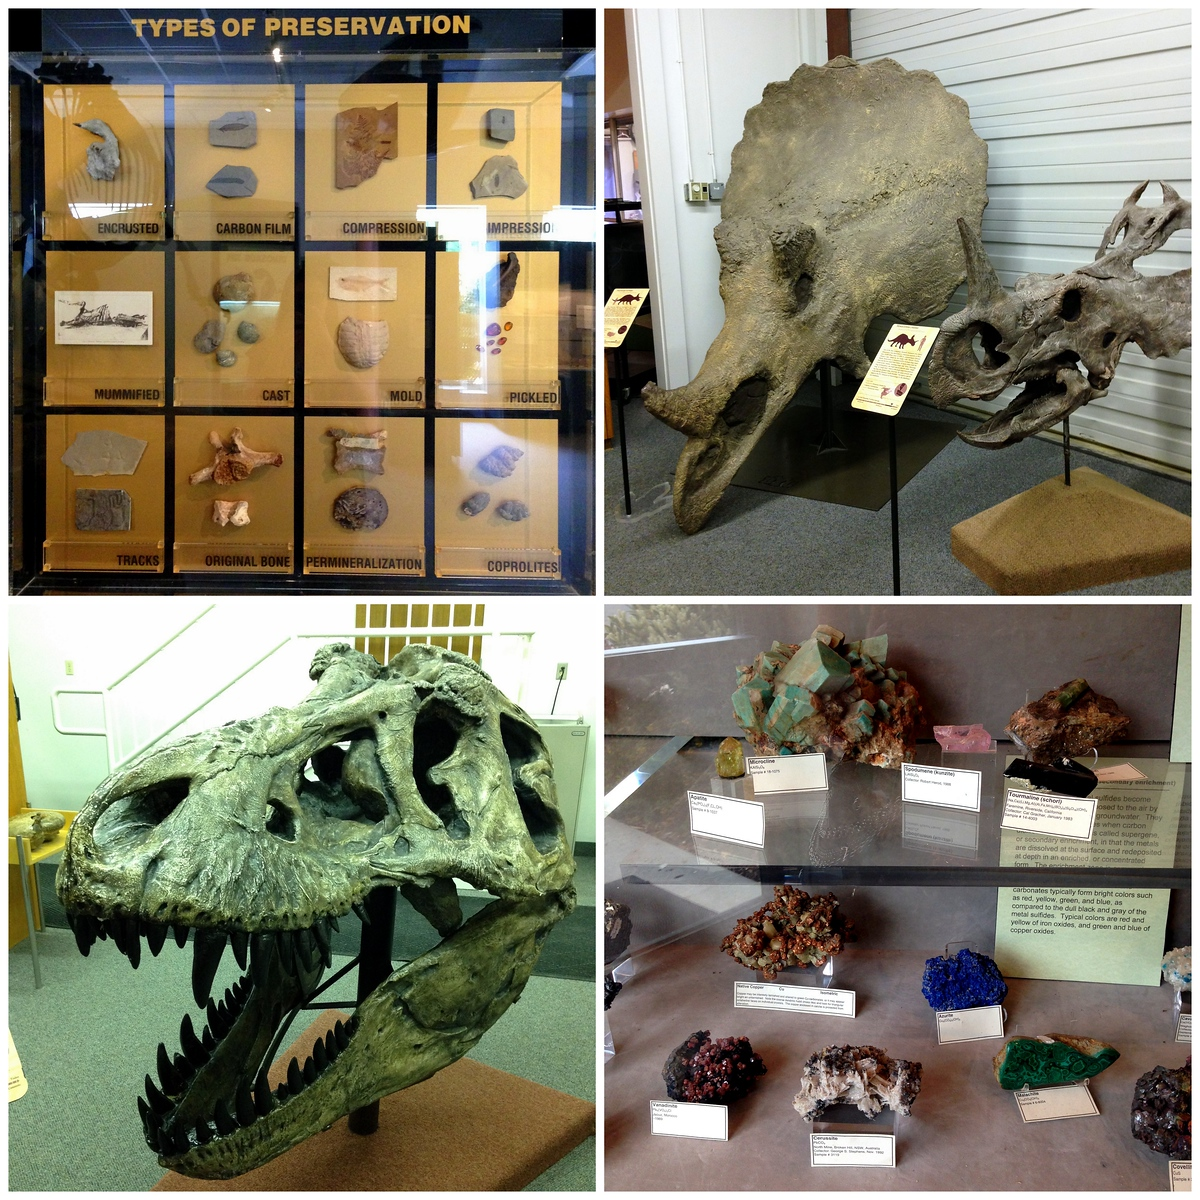 Various Rocks, Minerals, Fossils and Dino Bones on Display at the BYU Museum of Paleontology in Utah